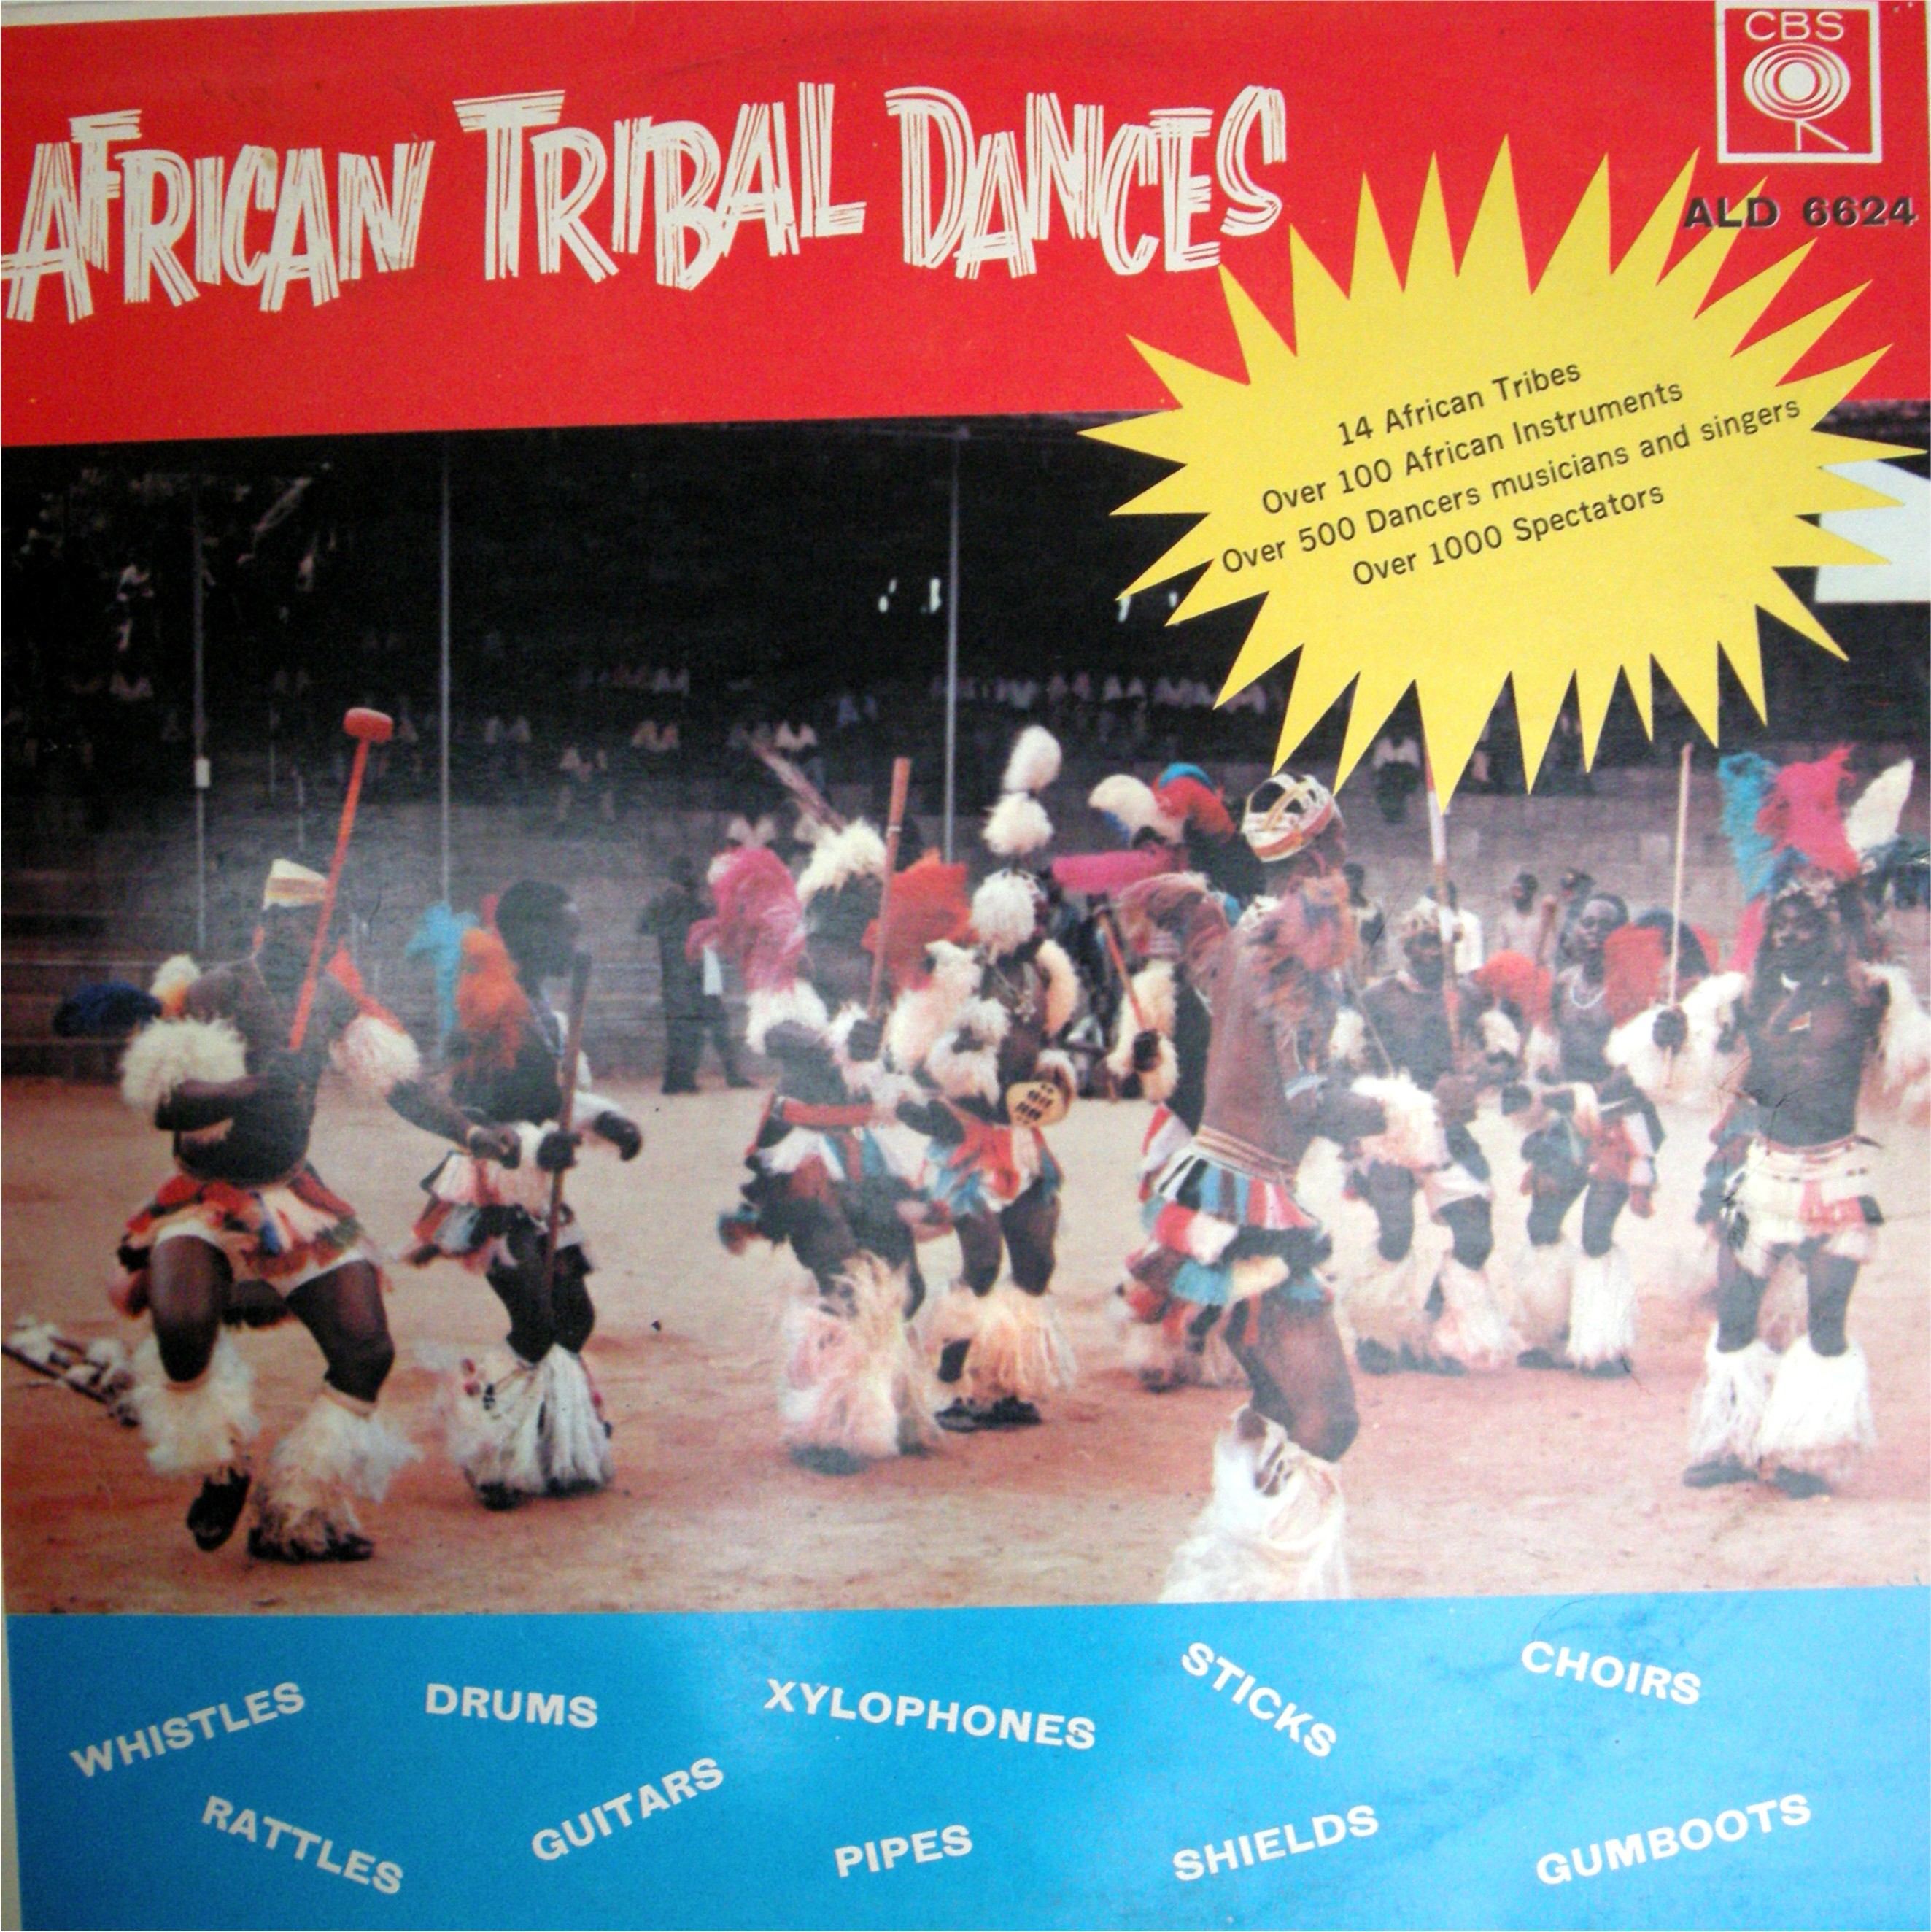 more African tribal dances from the Witwatersrand Gold Mines